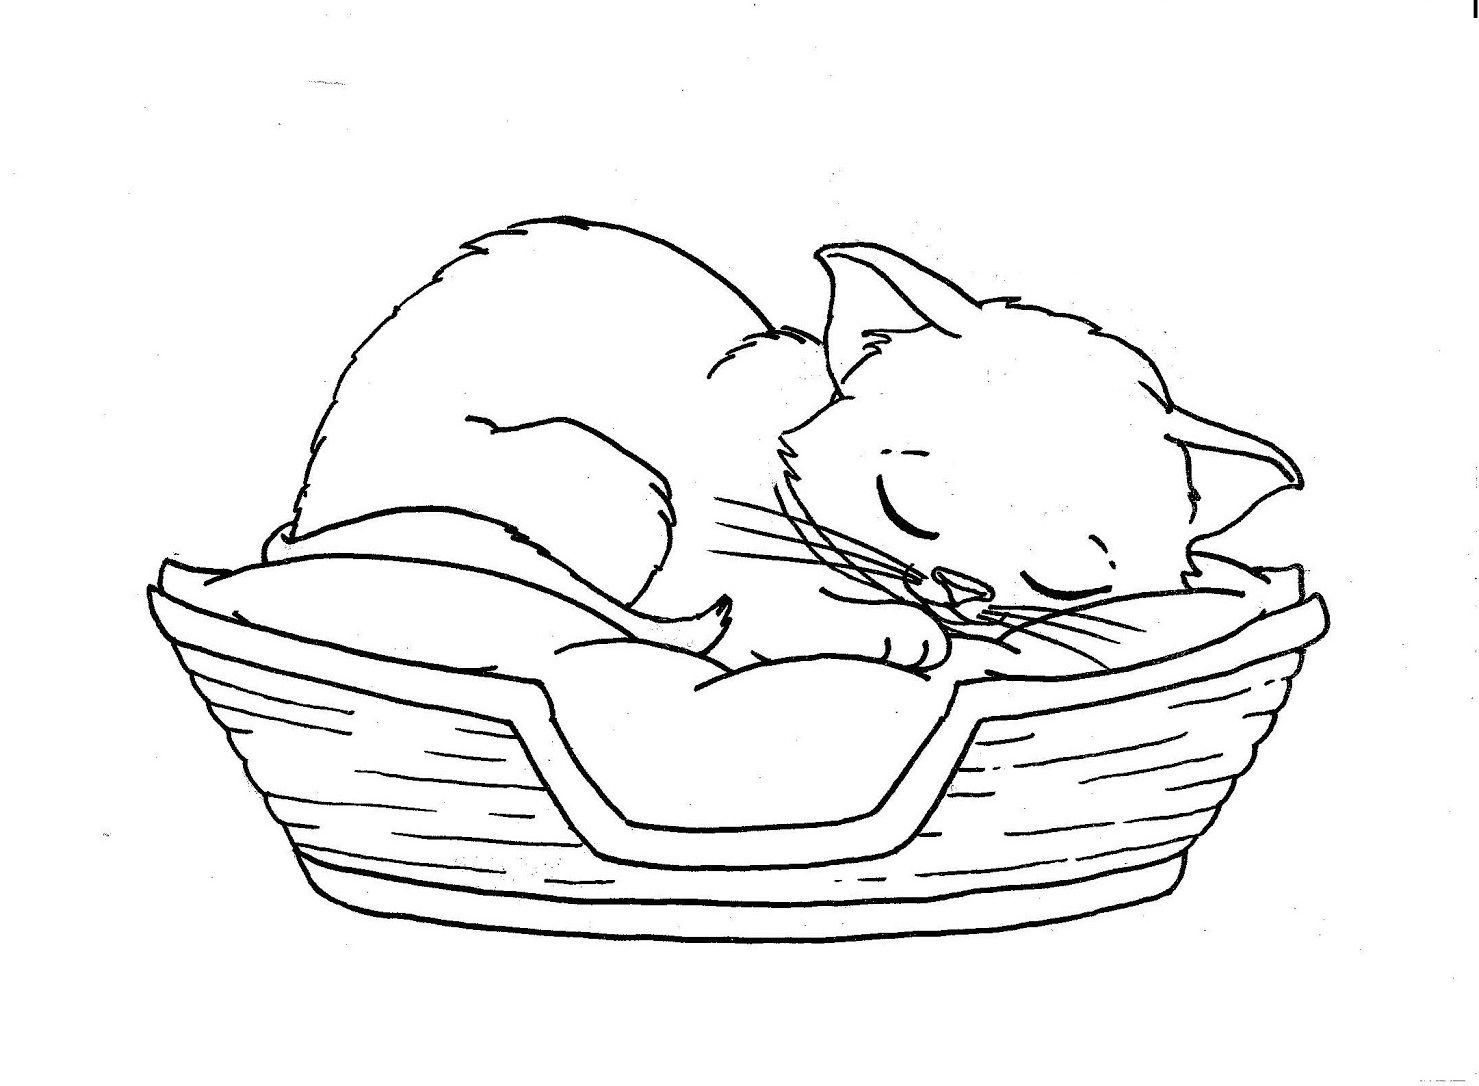 Coloring pages for toddlers sleeping - Cats Sleeping Coloring Picture For Kids